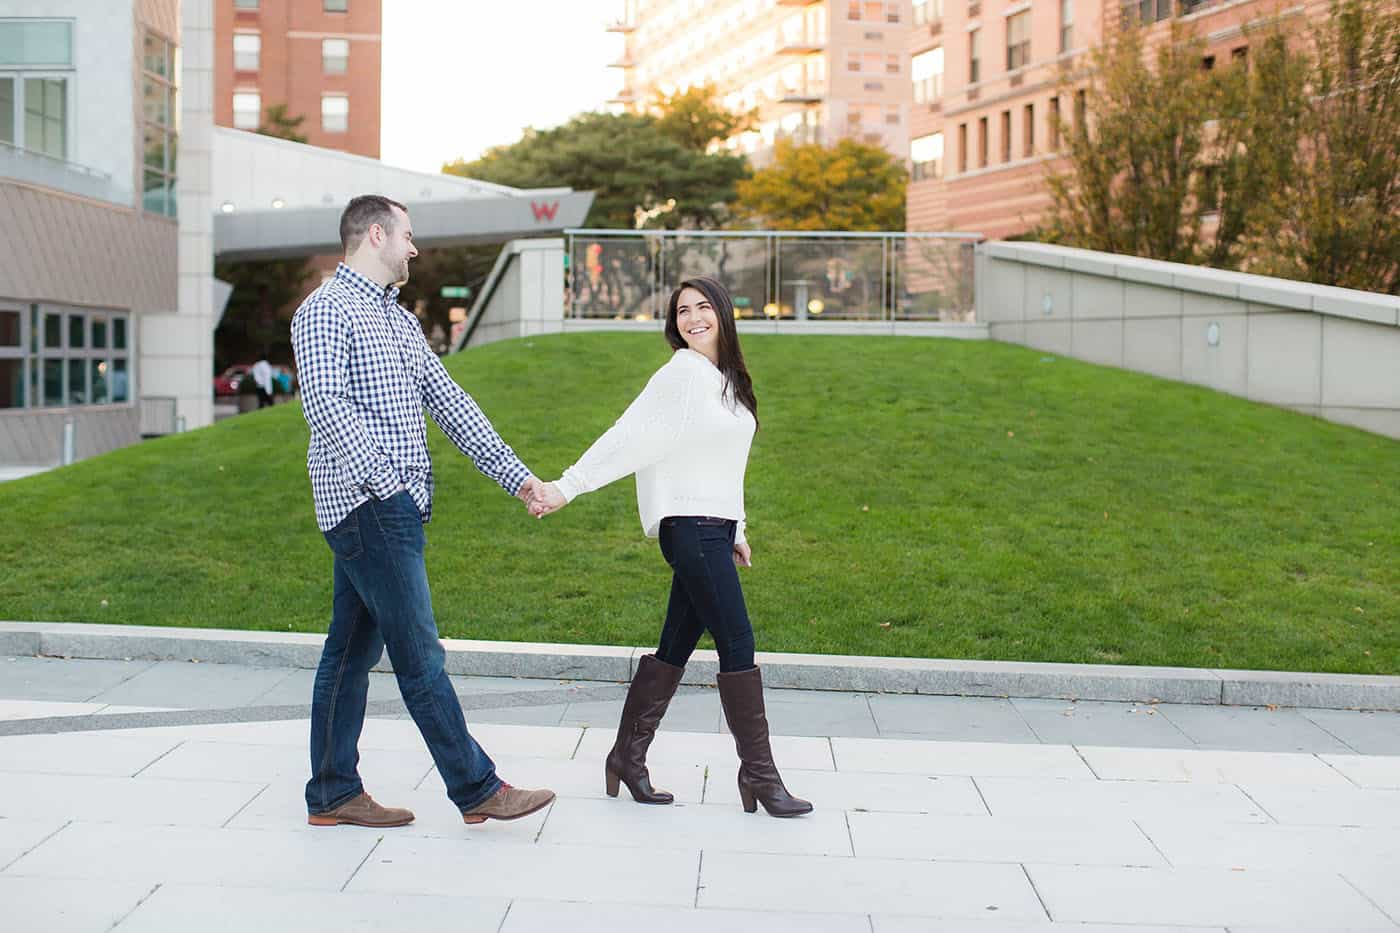 happy engaged couple walking through the city by customer service whiz cinnamon wolfe